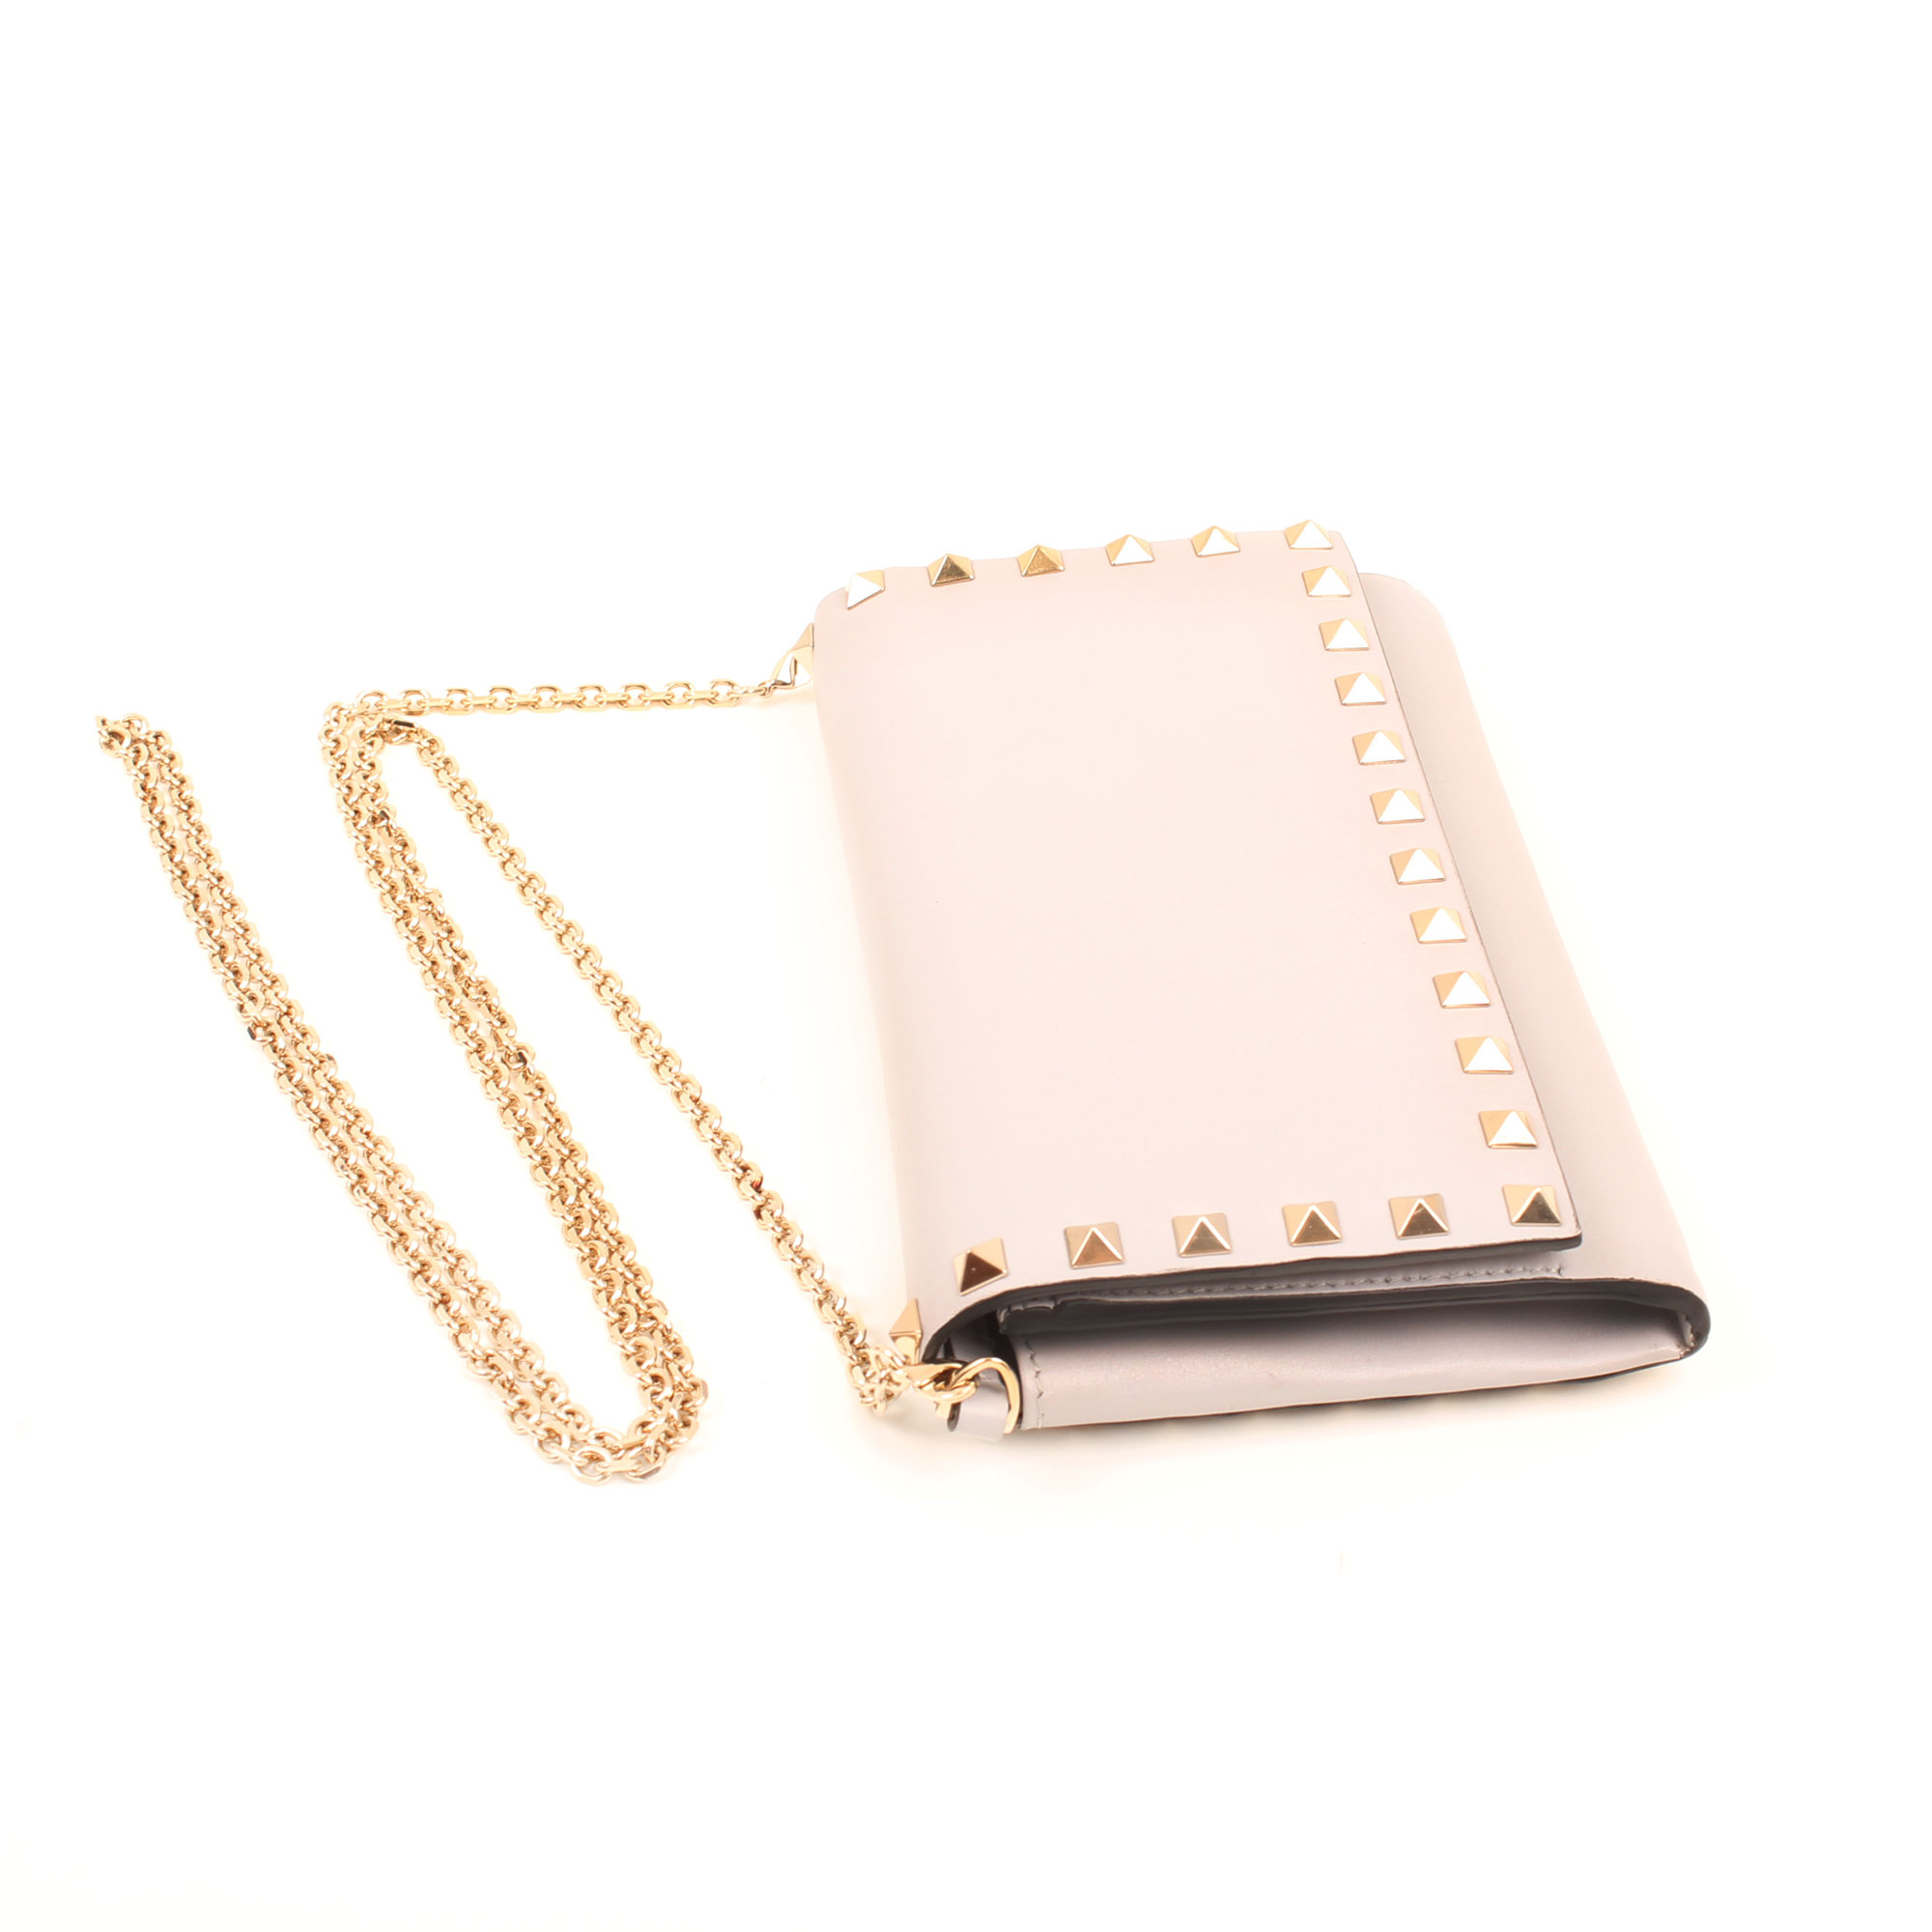 General image of valentino woc rockstud light grey dustbag